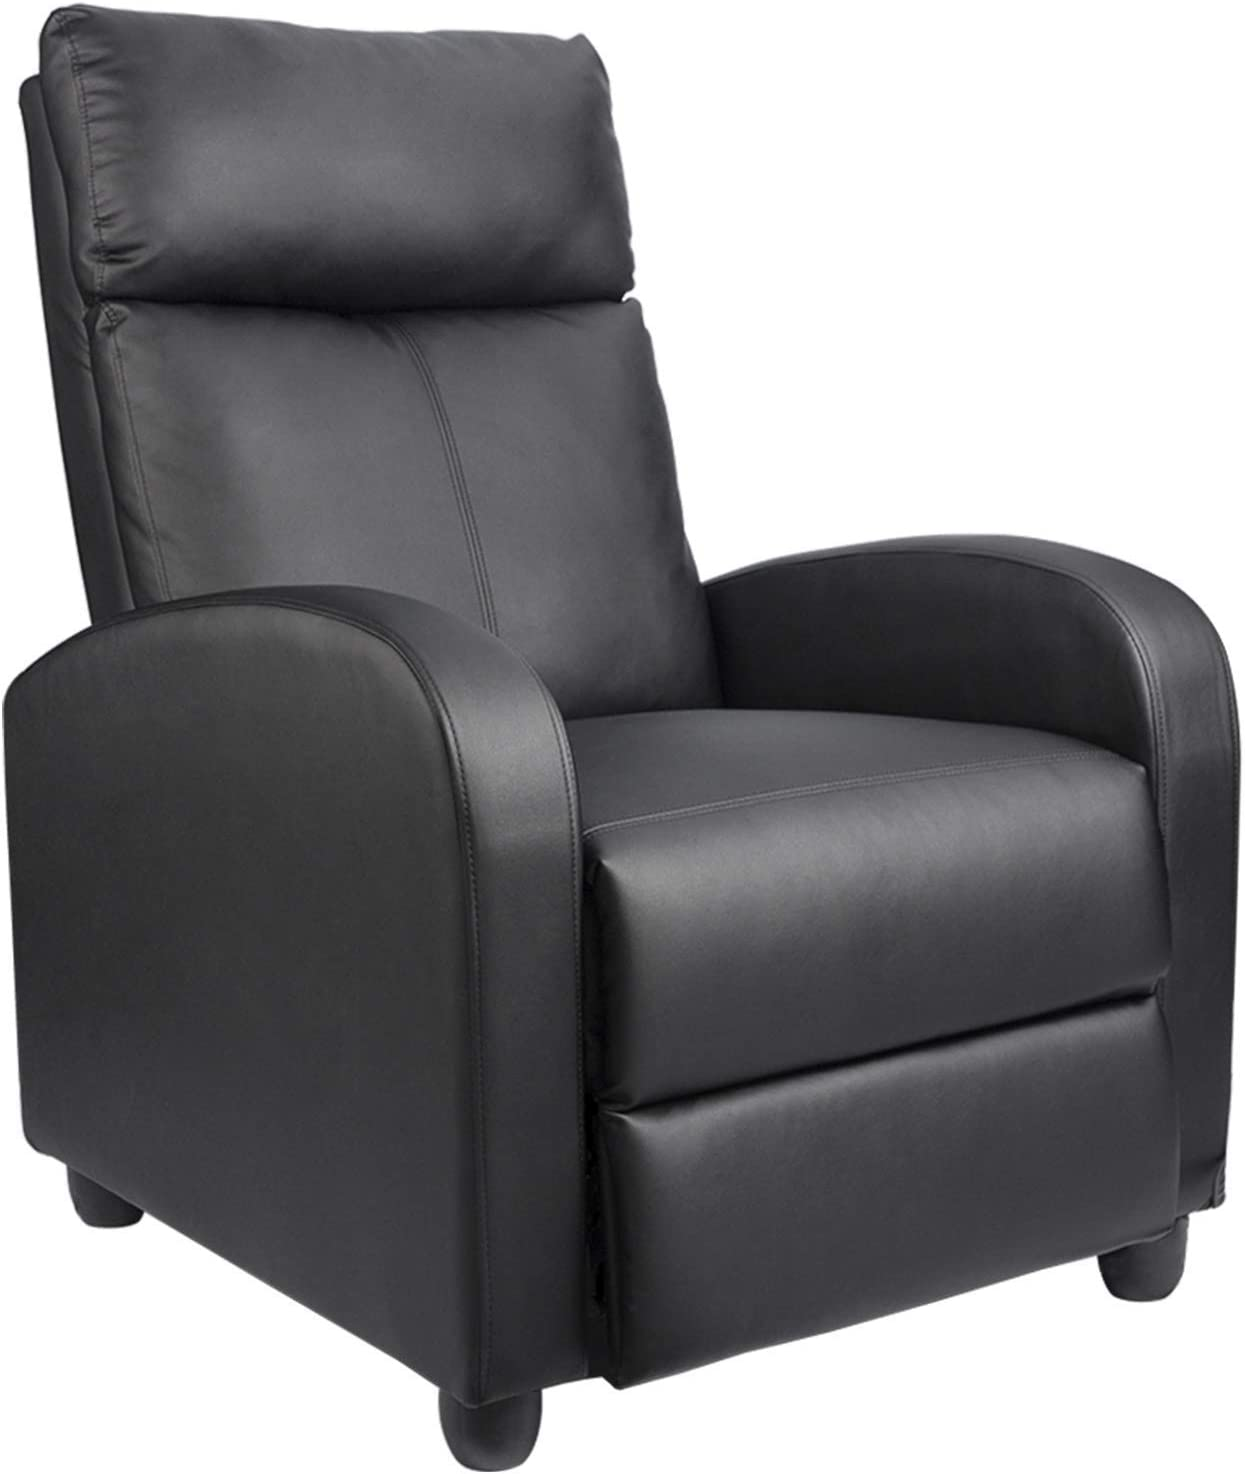 Best Affordable Leather Sofa Recliner: Homall Pu Leather Recliner For Living Room.